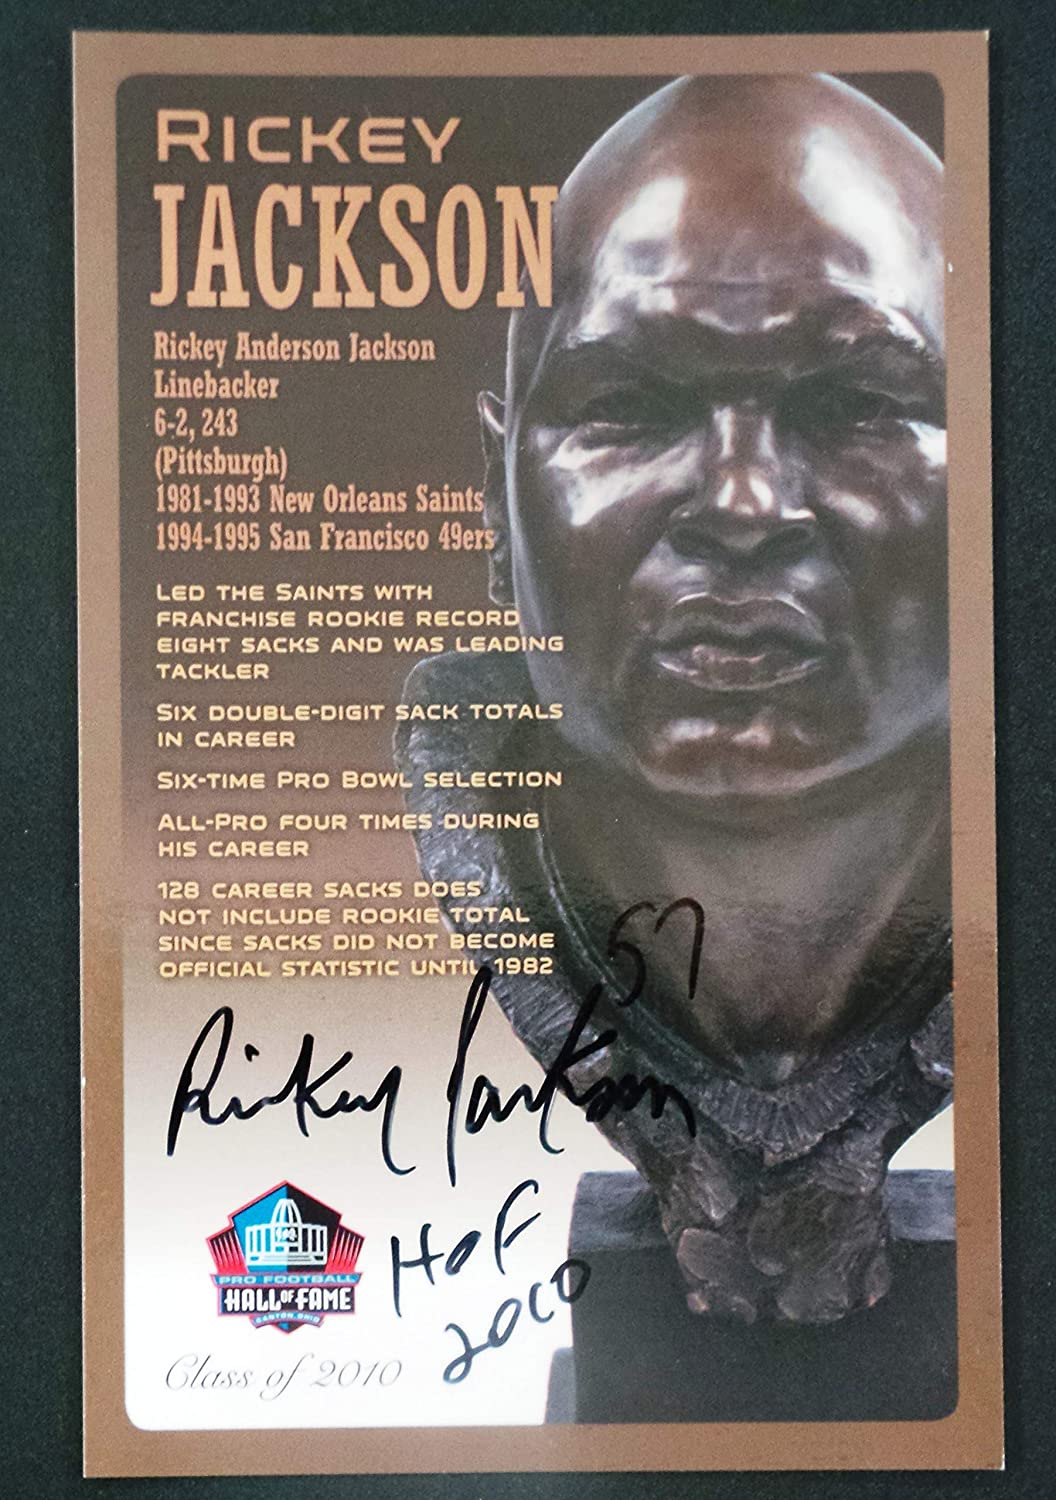 B00CV9CMC2 PRO FOOTBALL HALL OF FAME Rickey Jackson NFL Signed Bronze Bust Set Autographed Card with COA (Limited Edition # of 150) 81xv4Dk0liL